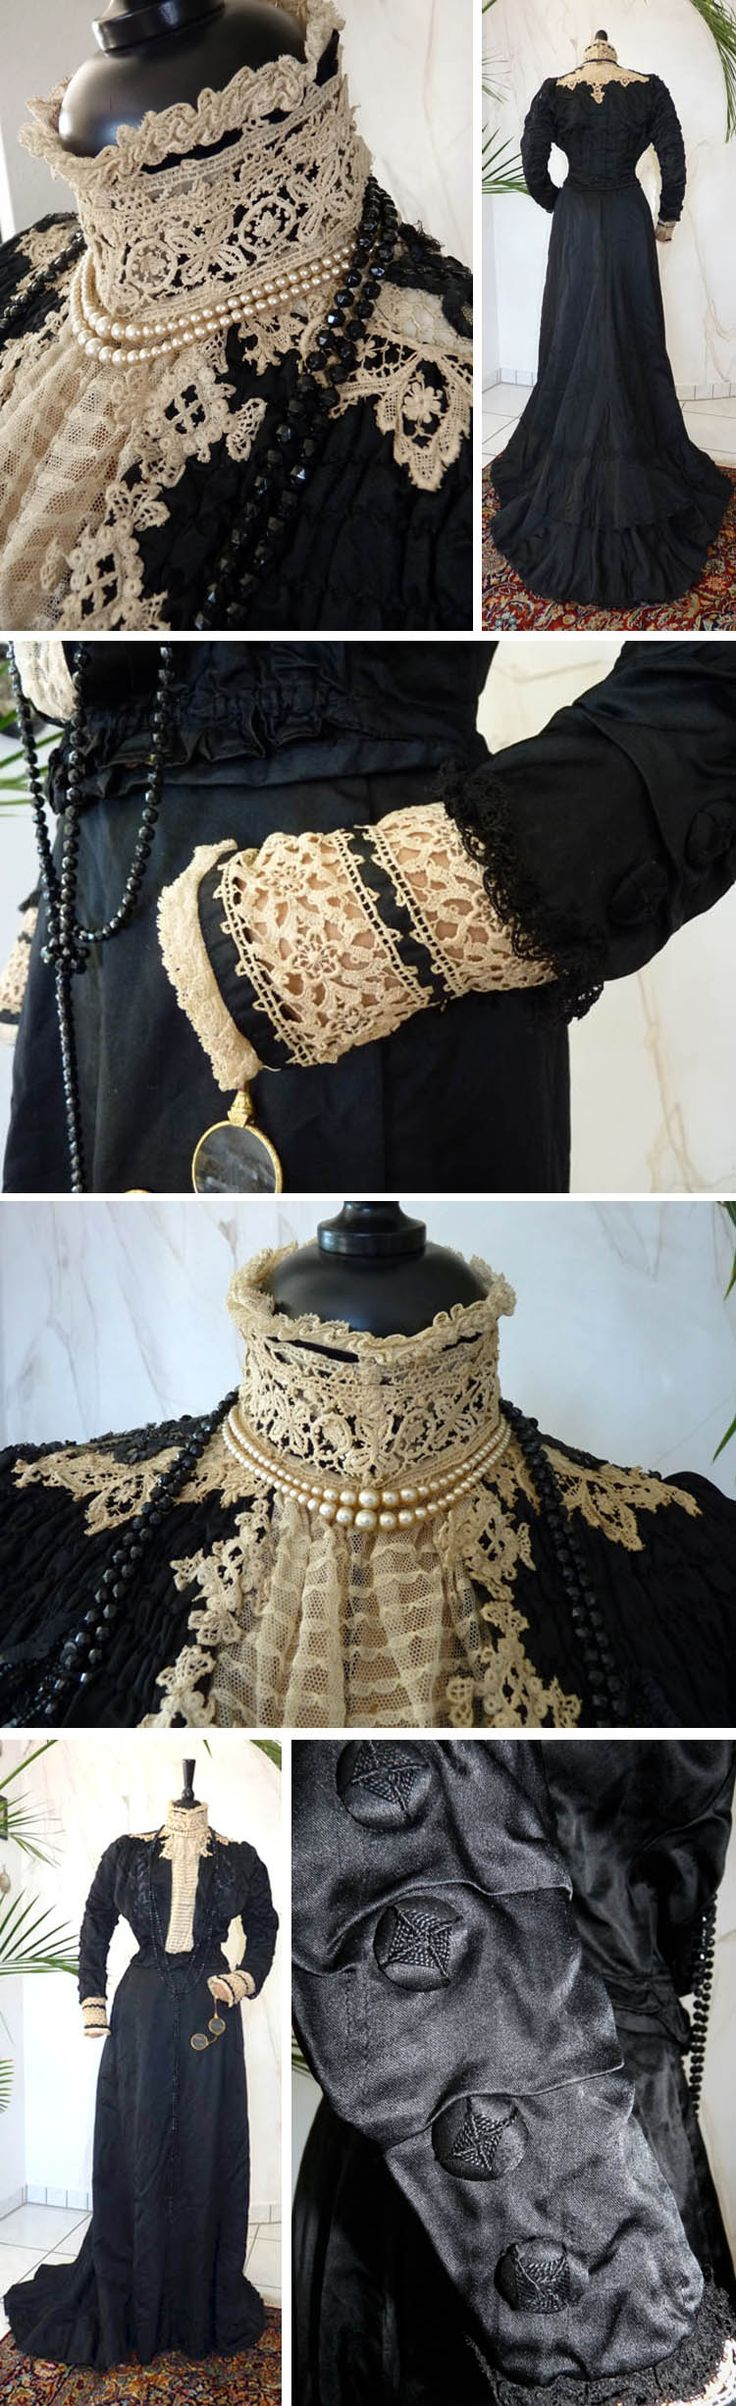 Dinner dress, Mrs. Clow, Banbury, England, ca. 1895. Cream and black lace, silk, sequins, tulle, all handworked. Pocket in skirt. Back of train has cord with which the wearer could lift carry it. Antique-Gown